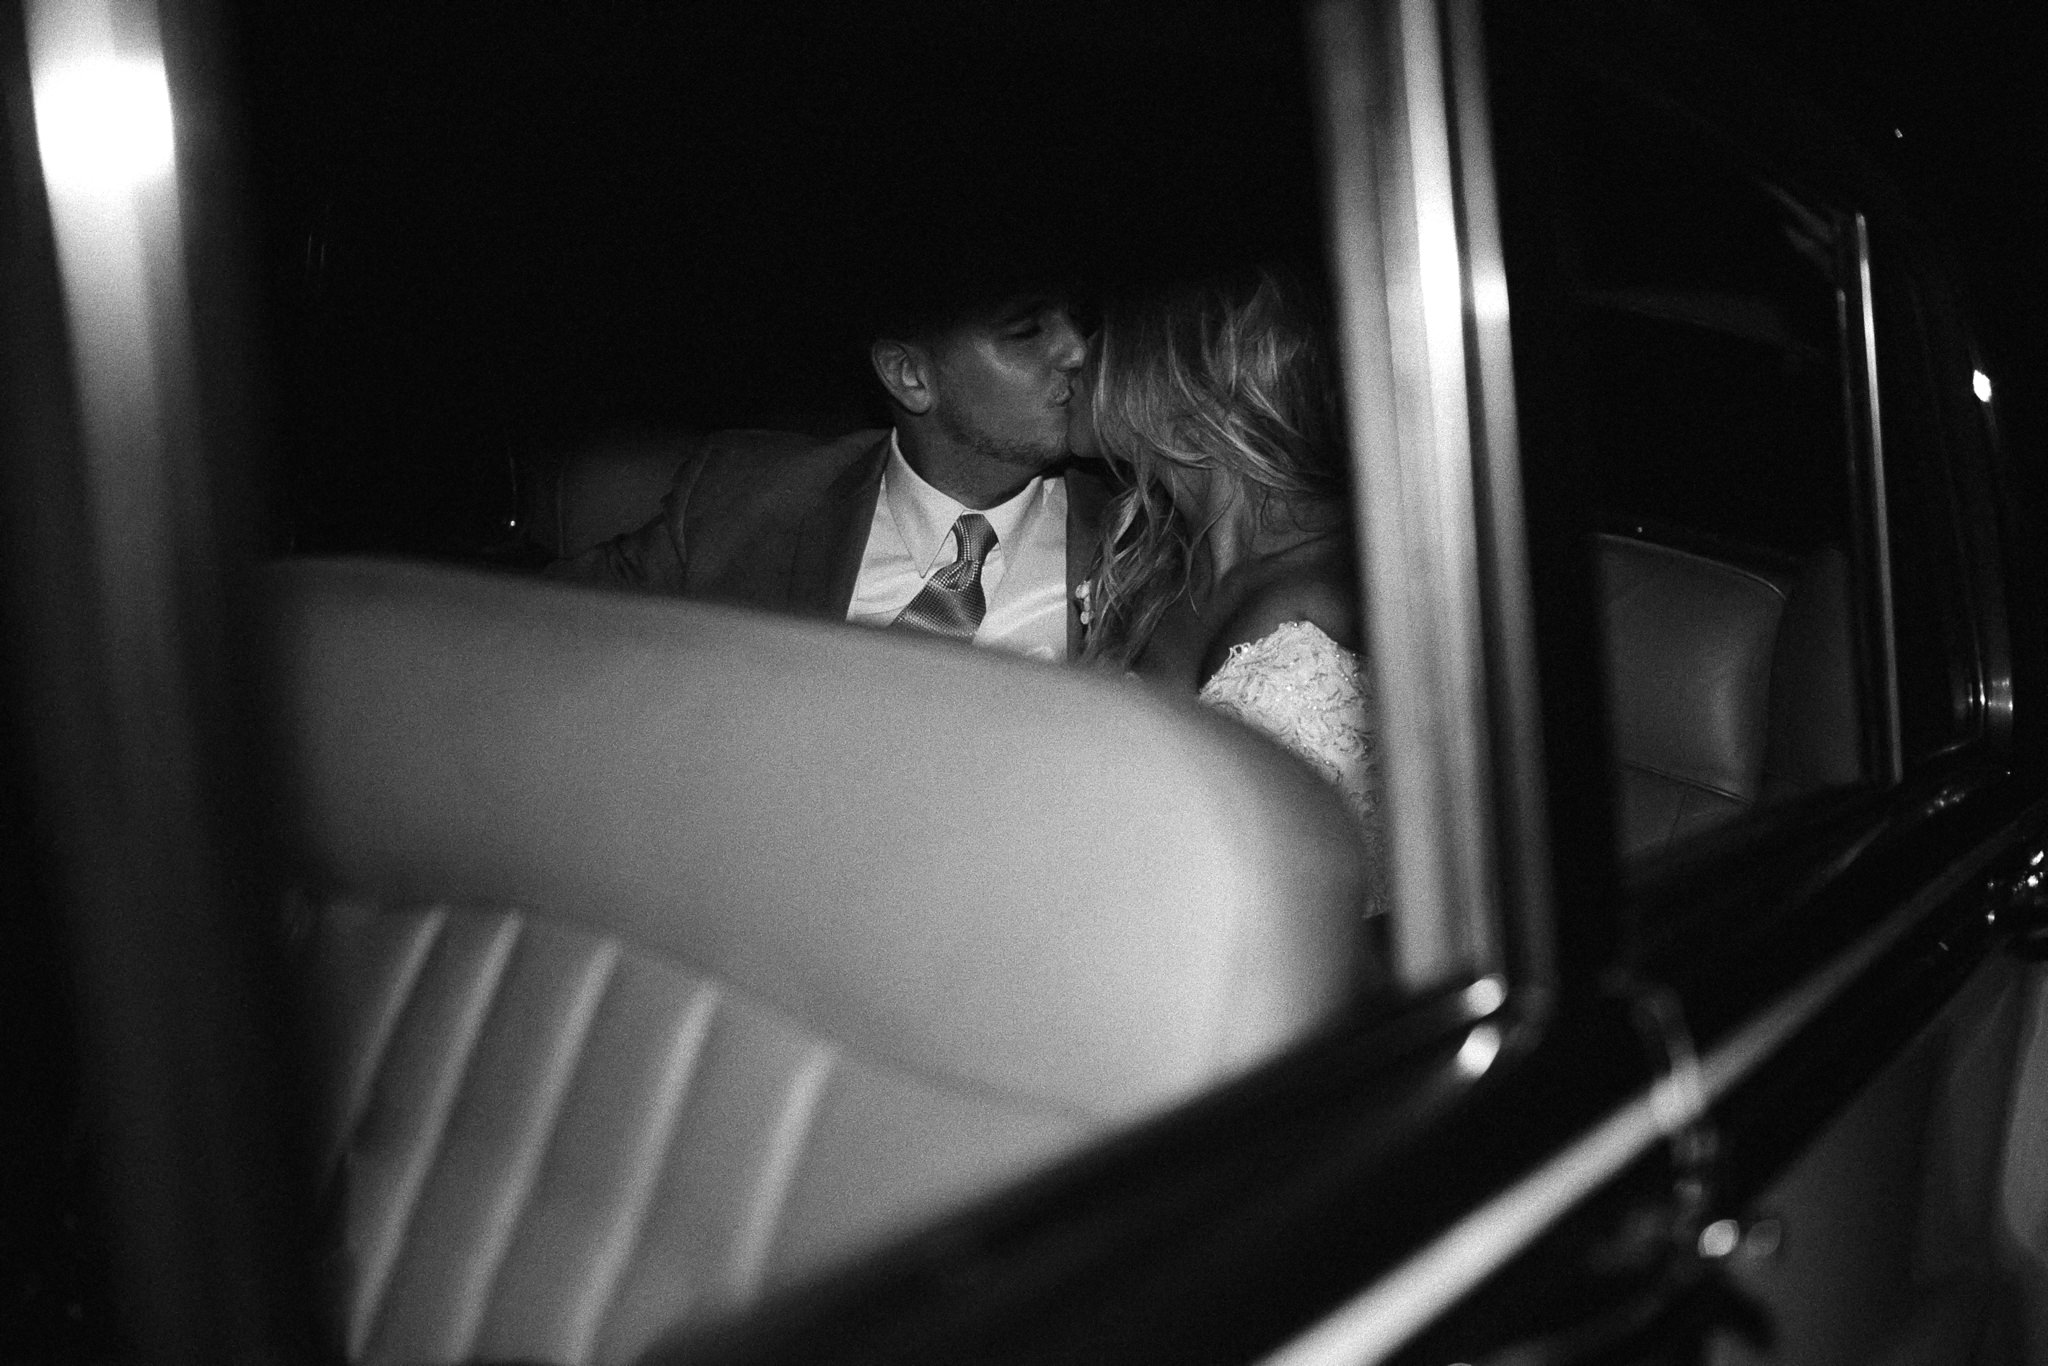 memphis-wedding-photographers-the-warmth-around-you-cassie-cook-photography-17.jpg